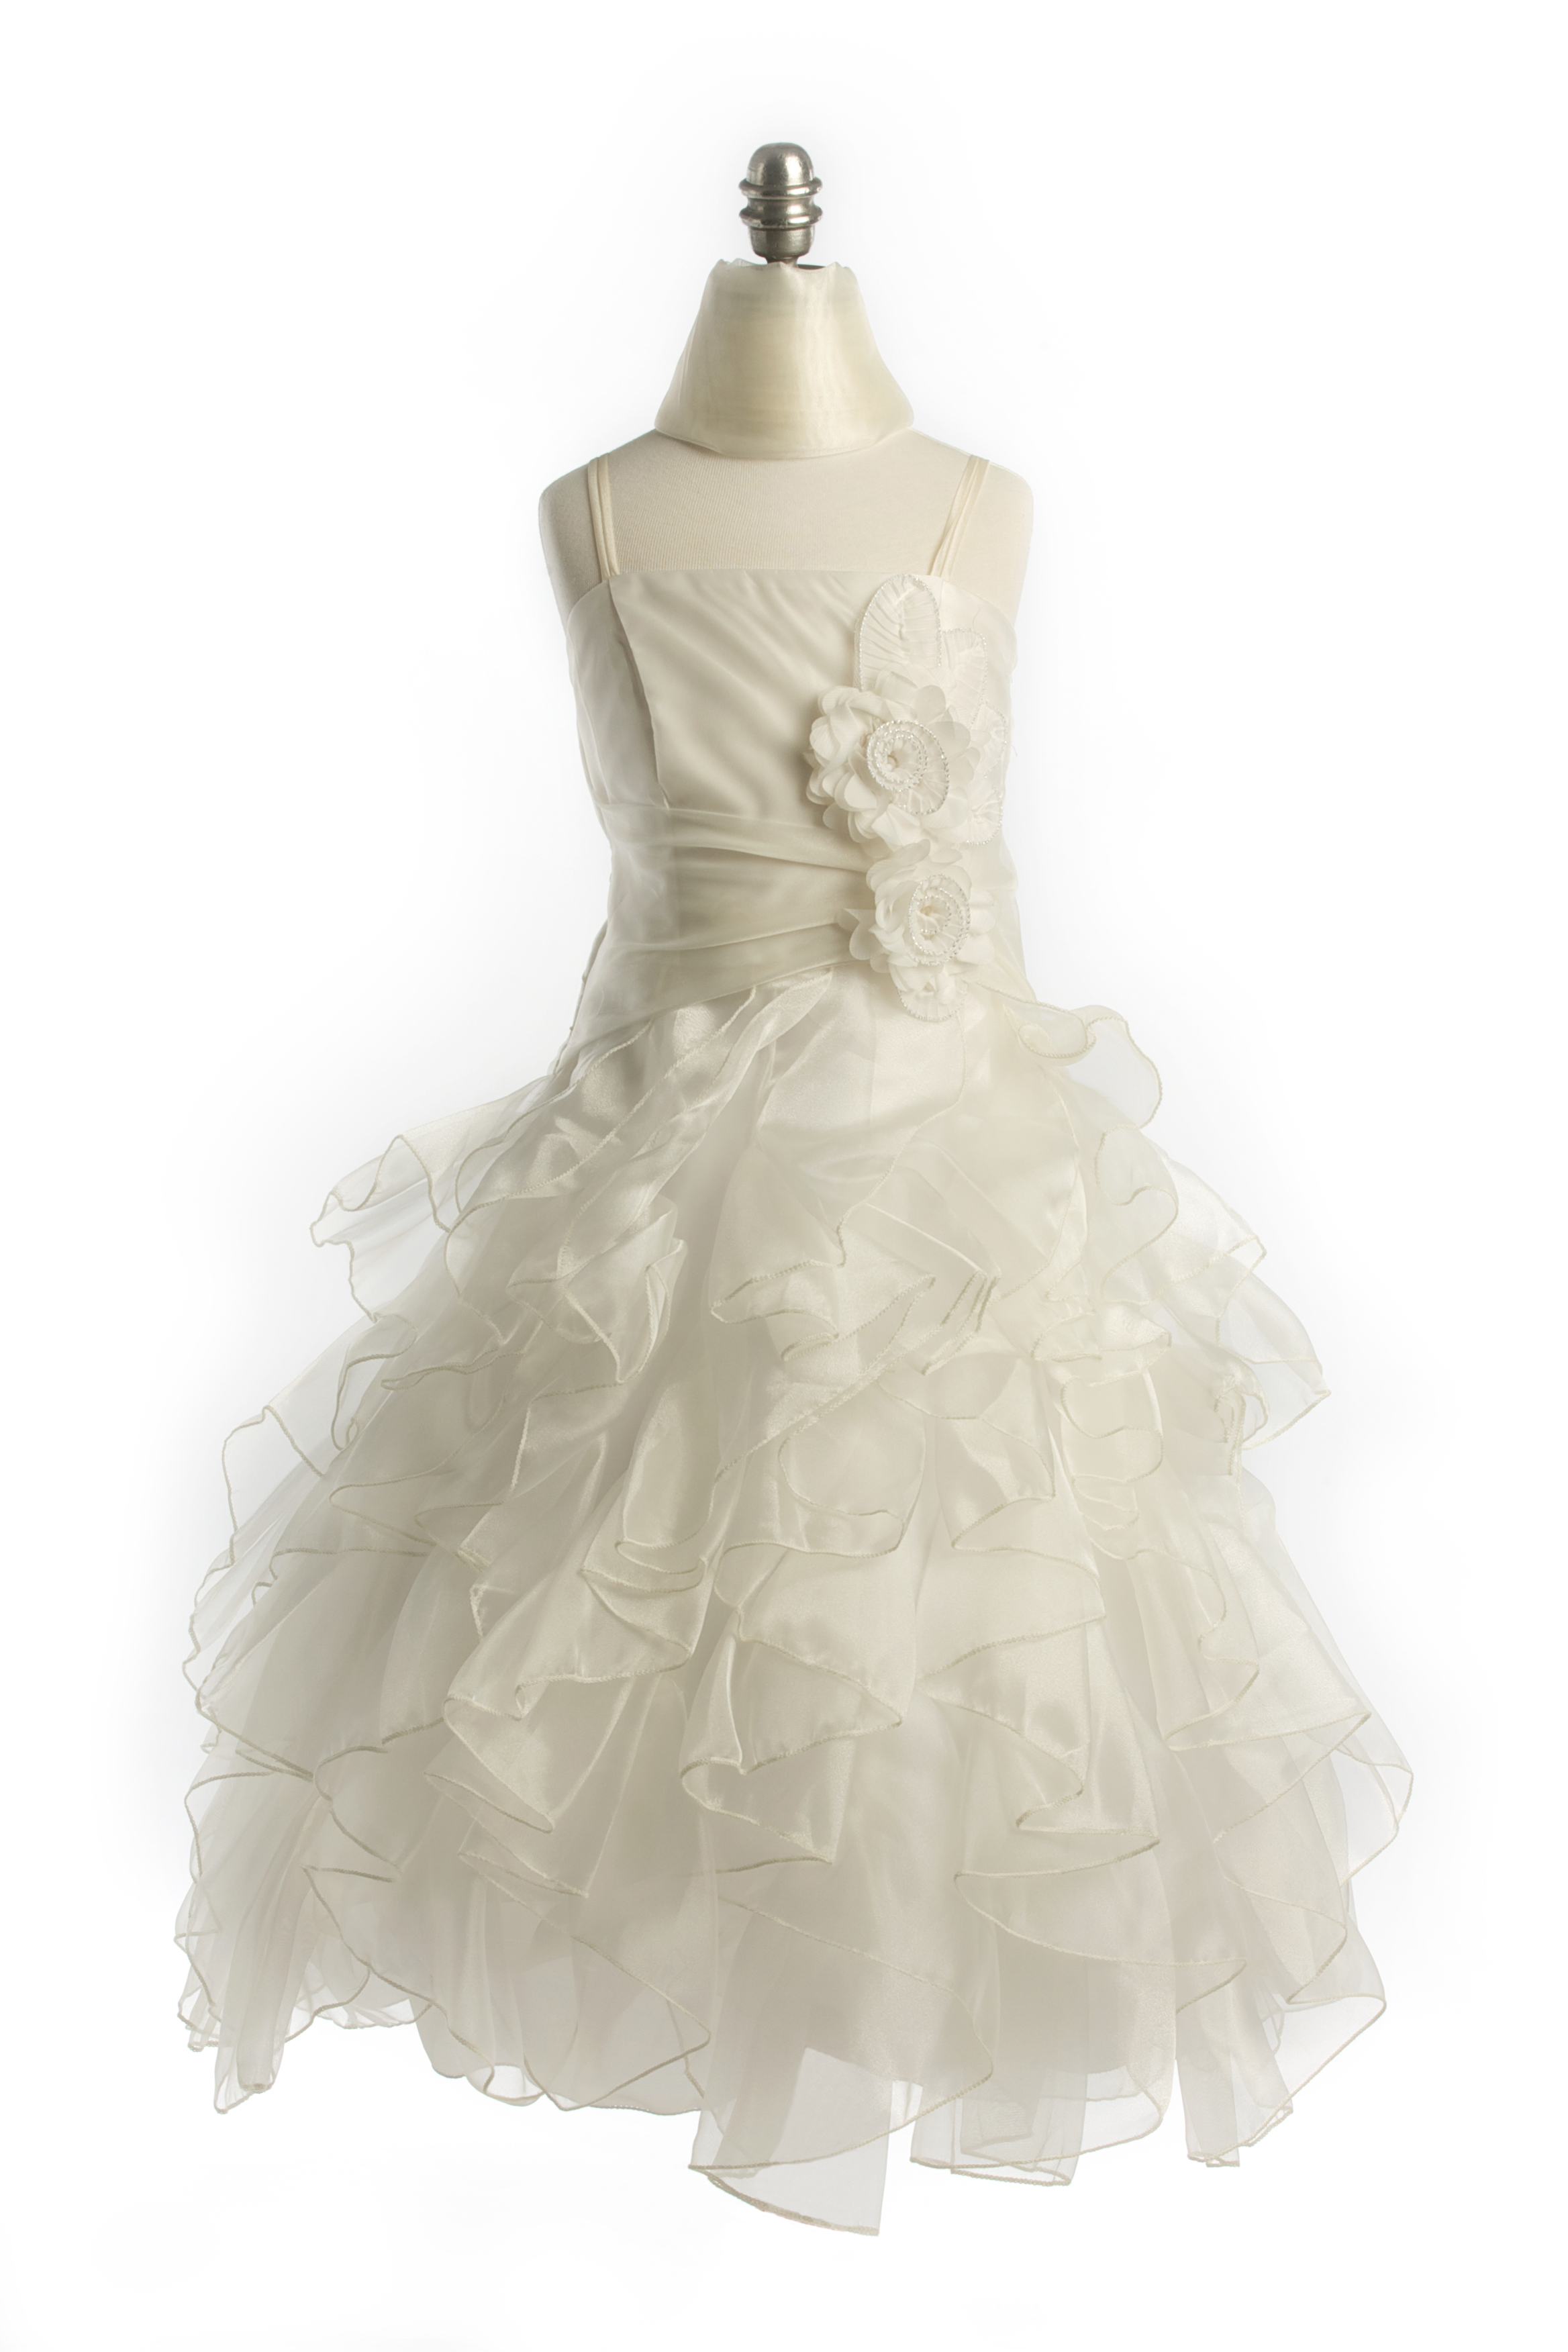 Quinceanera flower girl dresses wedding guest dresses quinceanera flower girl dresses 97 izmirmasajfo Images